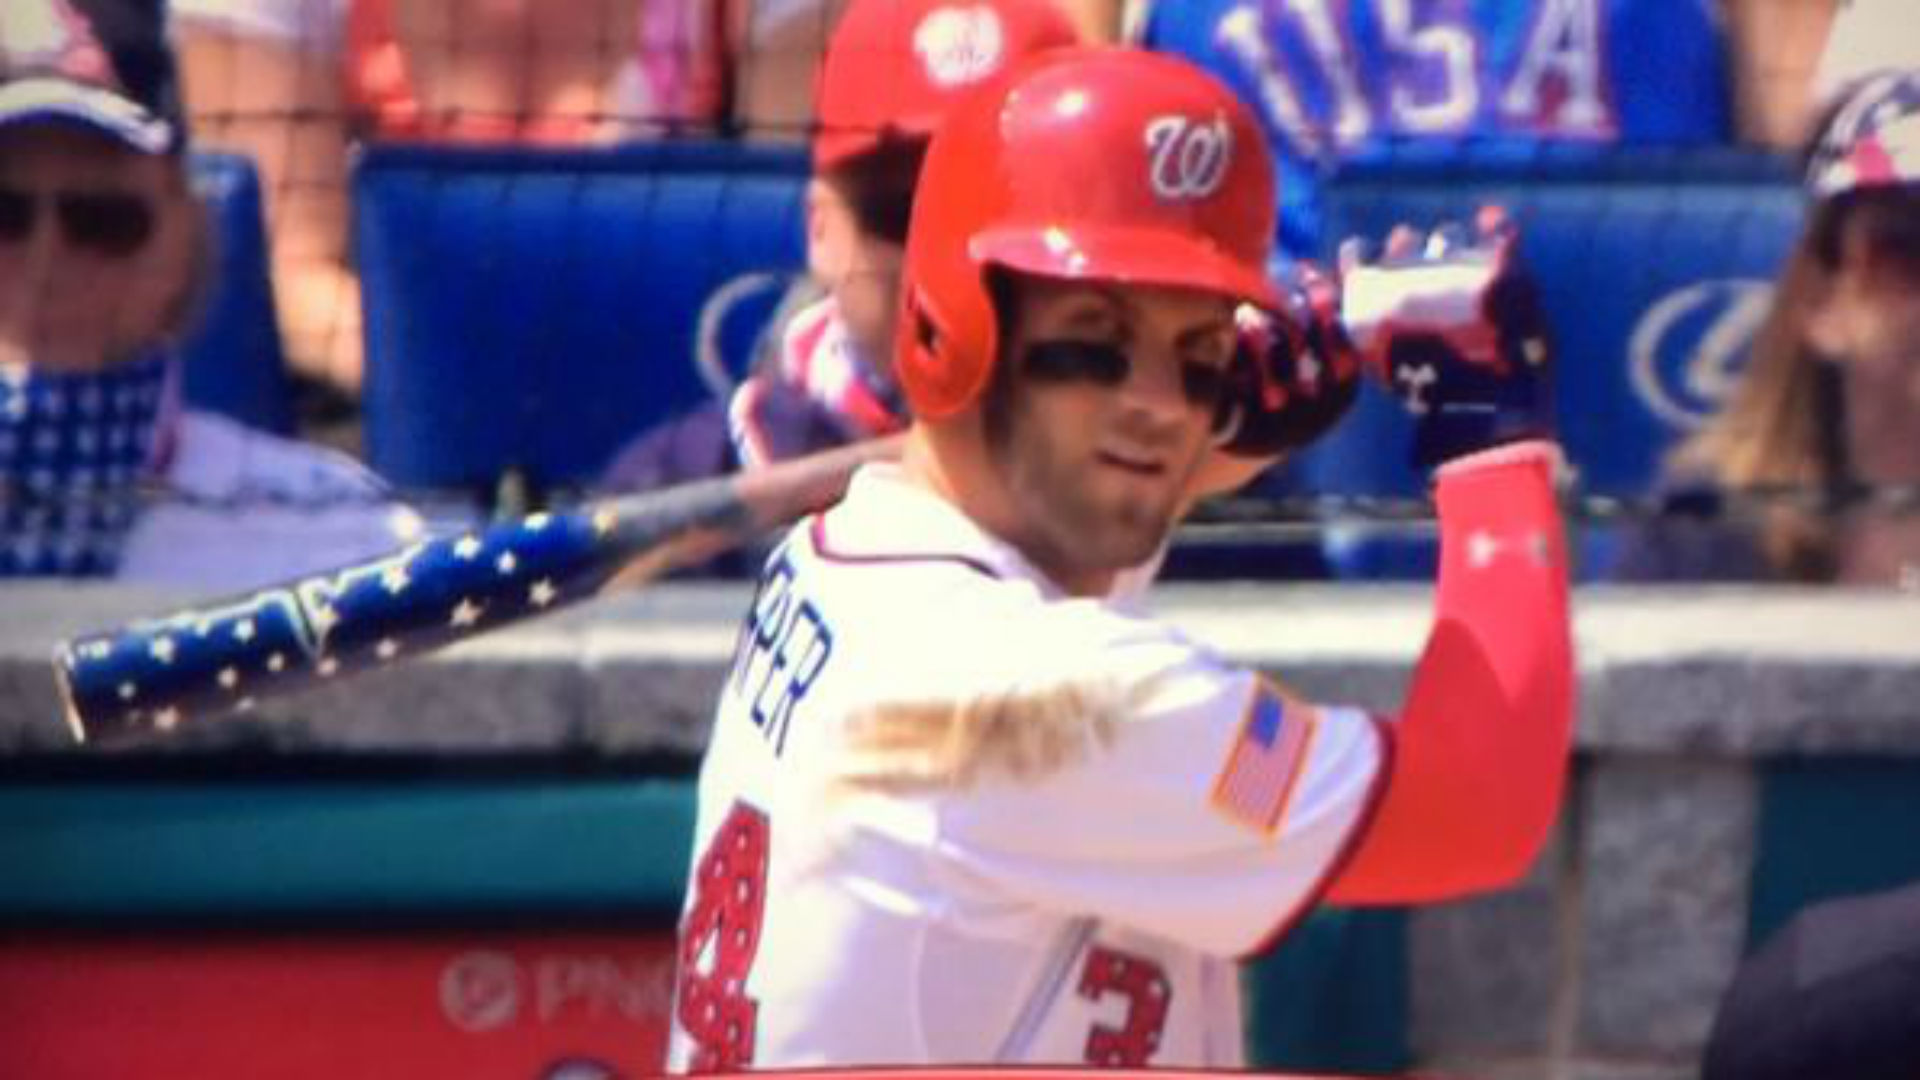 Bryce Harper pulls out star-spangled bat, blasts home run